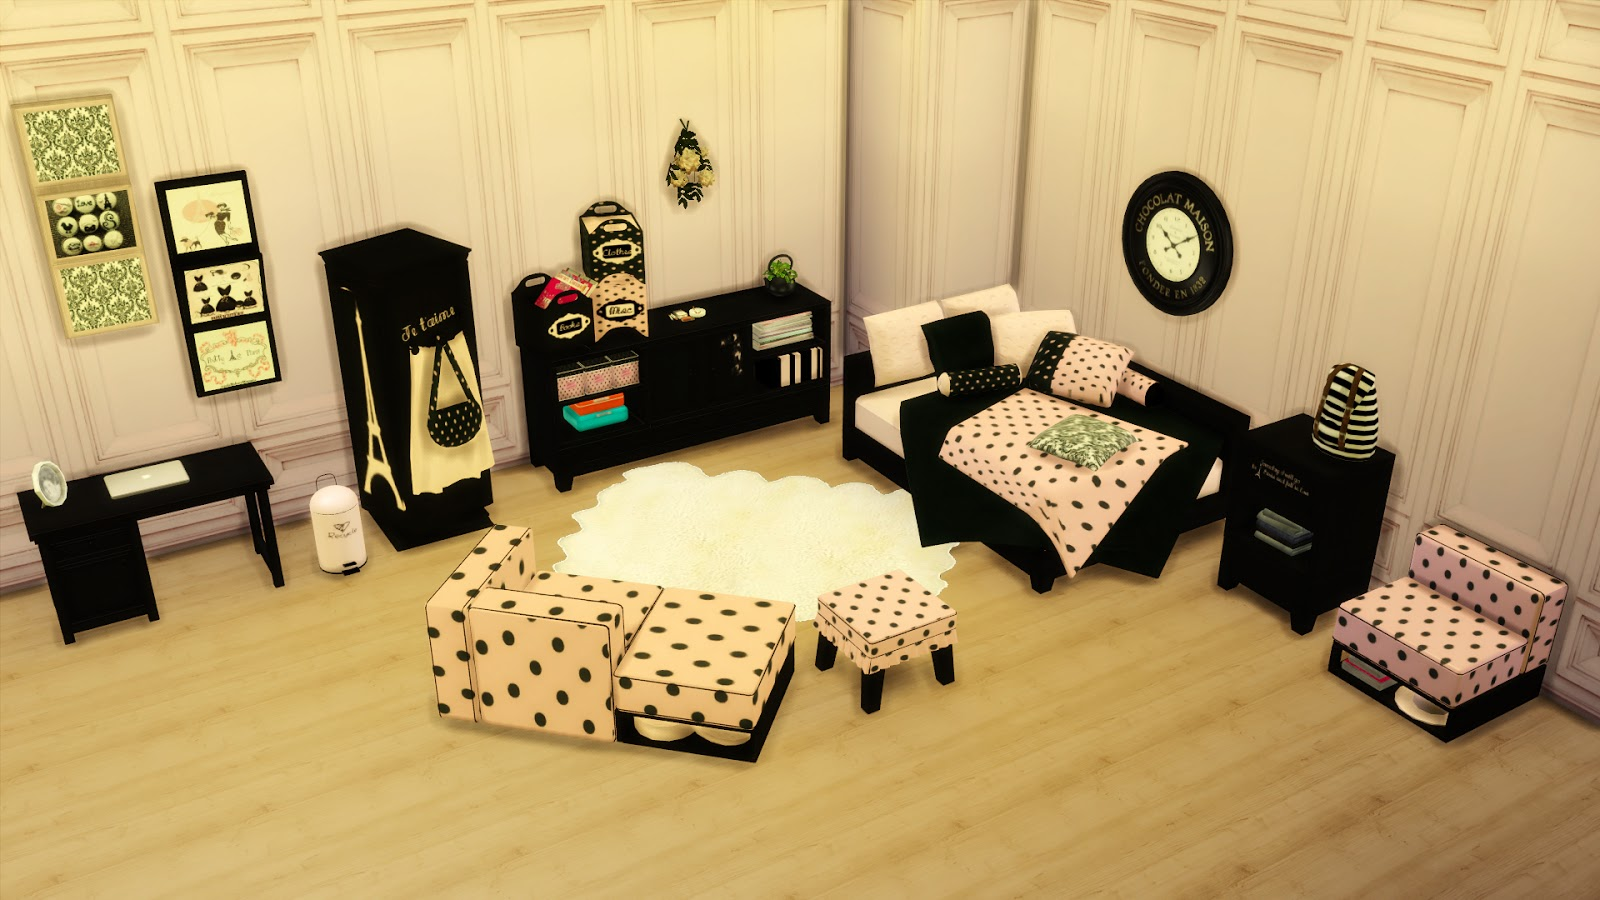 TS2 IKEA Armchairs and Paris Bedroom Conversions by Leo4Sims